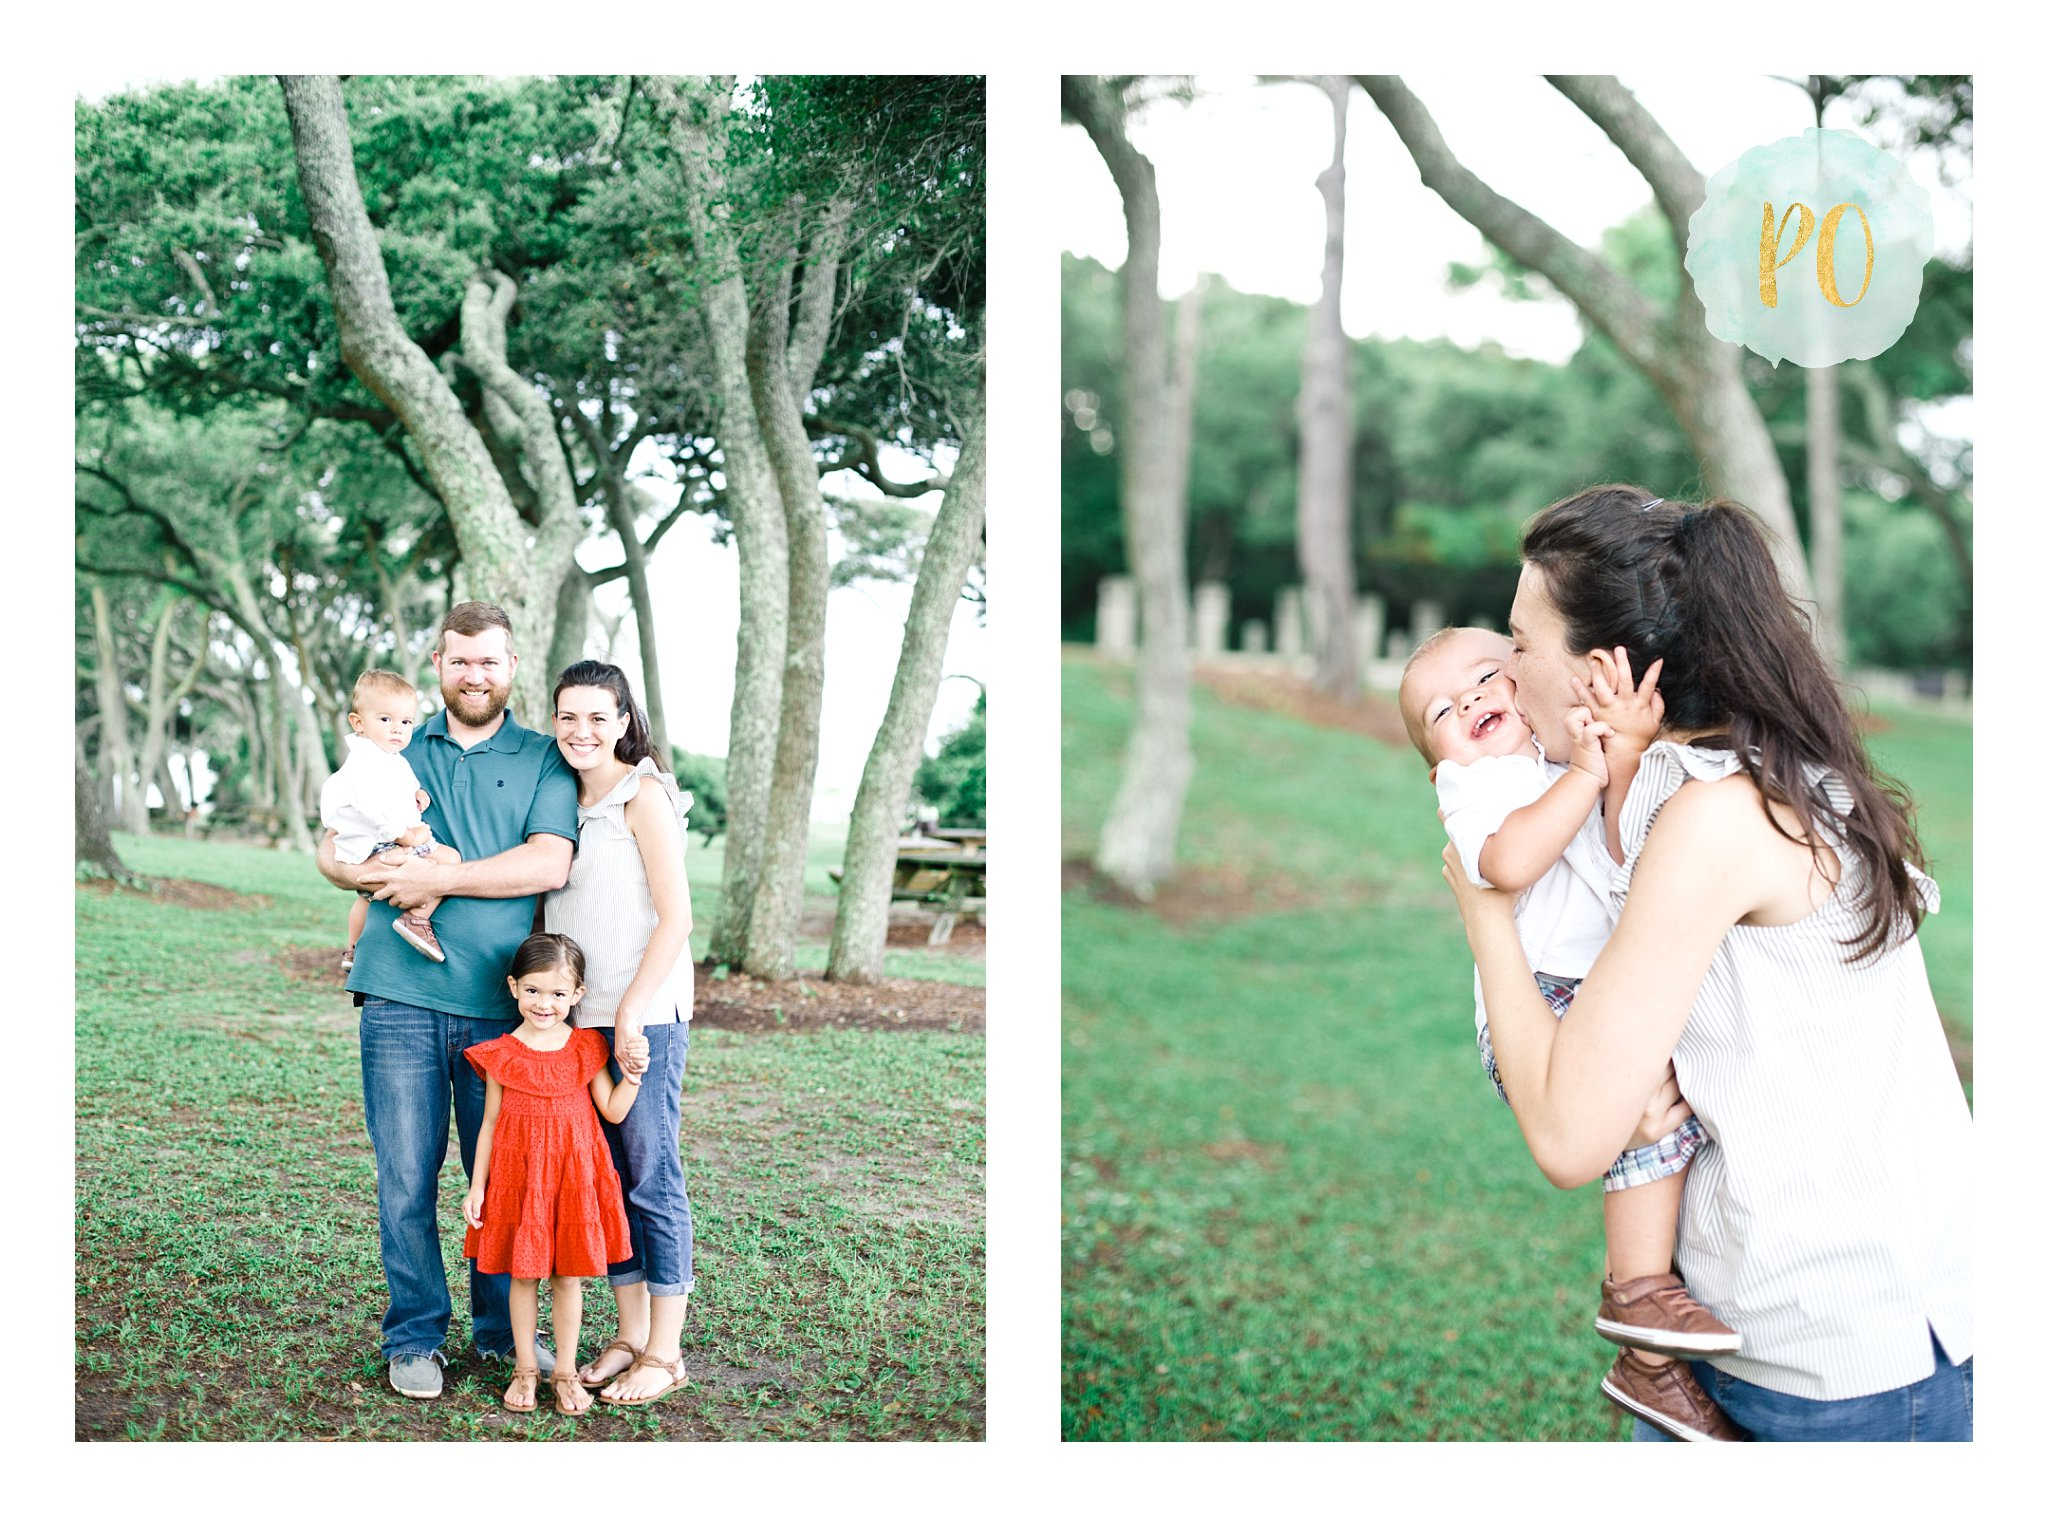 family-of-four-outdoor-family-session-myrtle-beach-state-park-myrtle-beach-sc-photos_0019.jpg